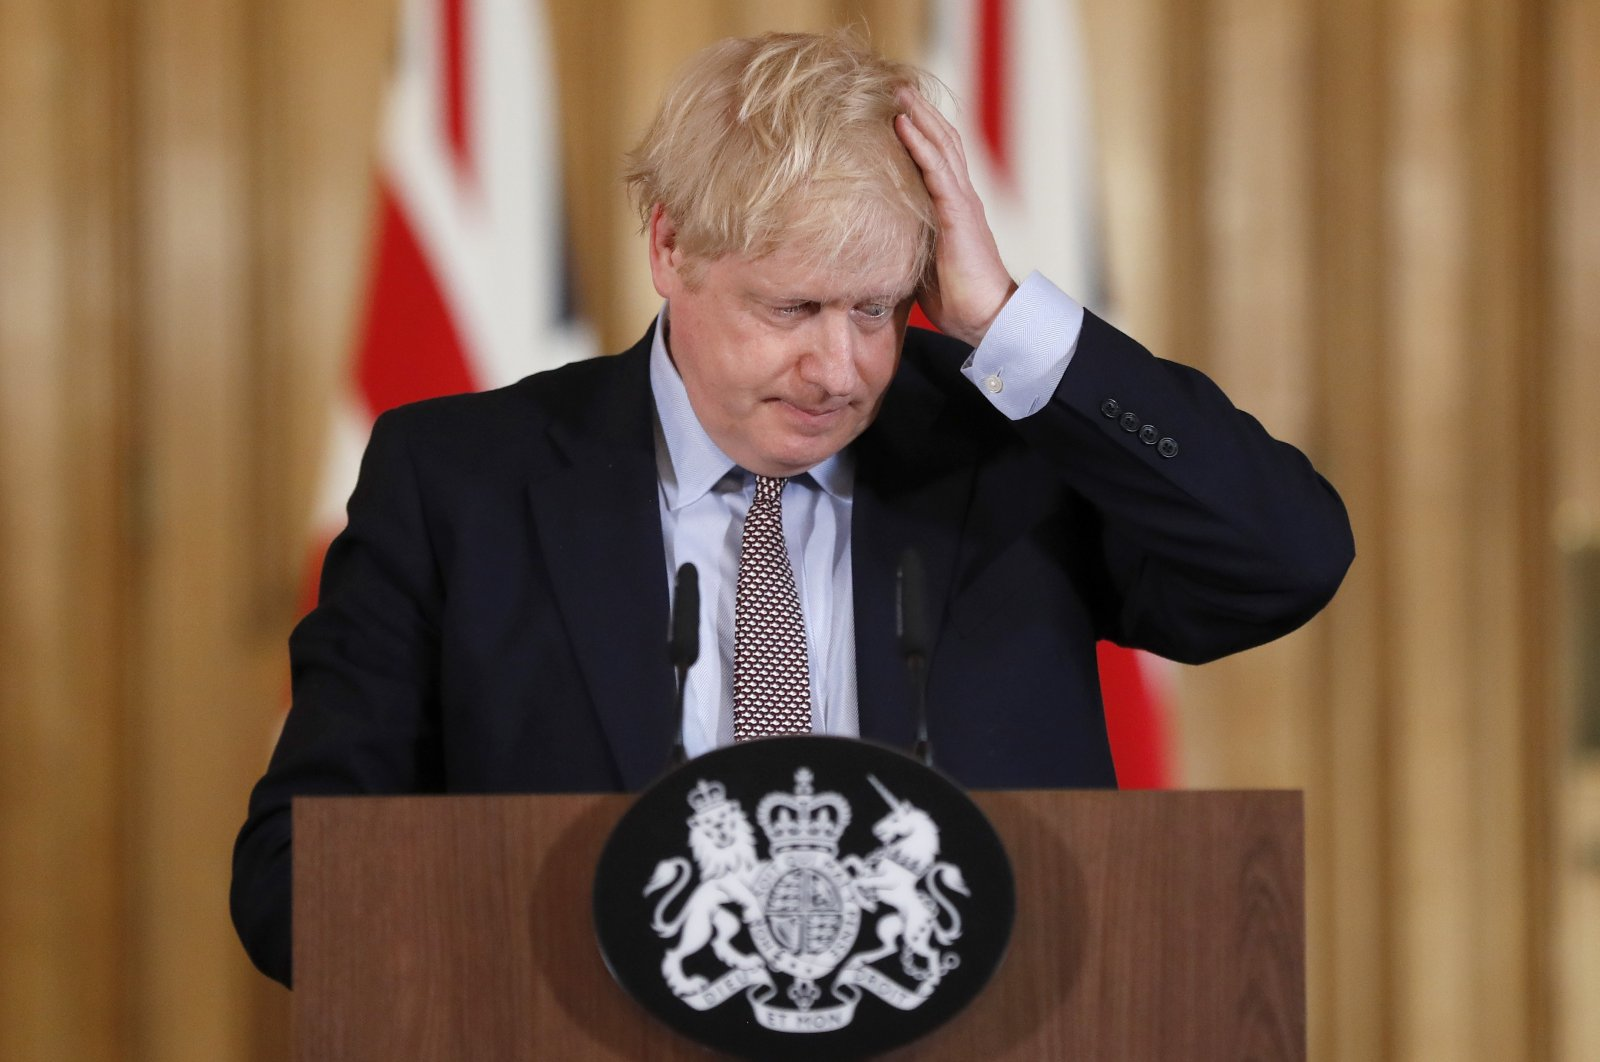 Britain's Prime Minister Boris Johnson reacts during a press conference at Downing Street on the government's coronavirus action plan in London, the U.K., March 3, 2020. (AP Photo)